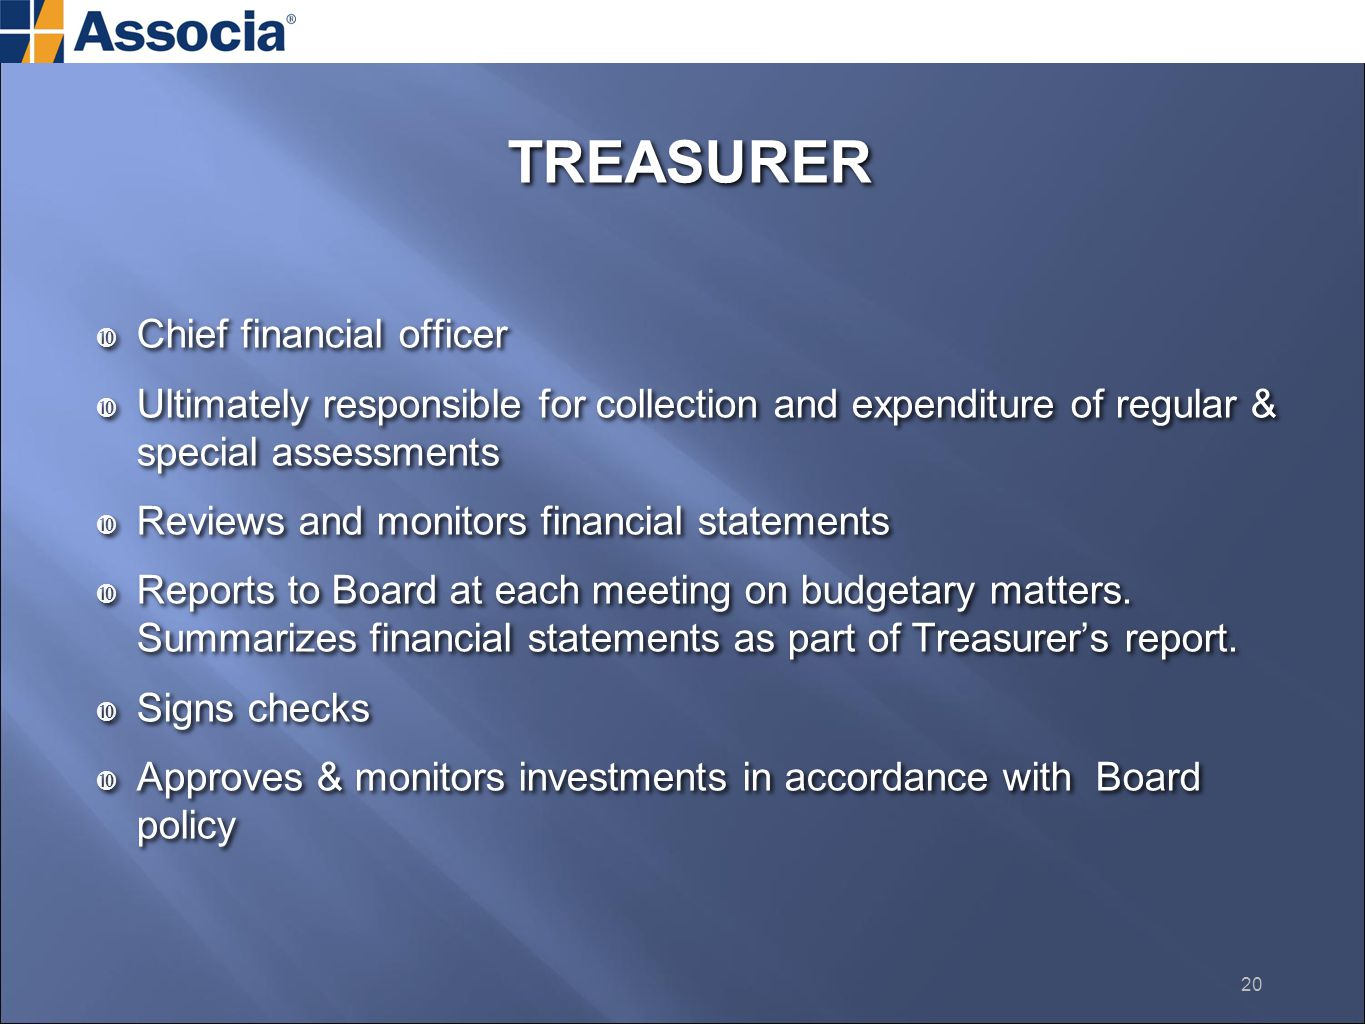 TREASURER  Chief financial officer  Ultimately responsible for collection and expenditure of regular & special assessments  Reviews and monitors financial statements  Reports to Board at each meeting on budgetary matters.